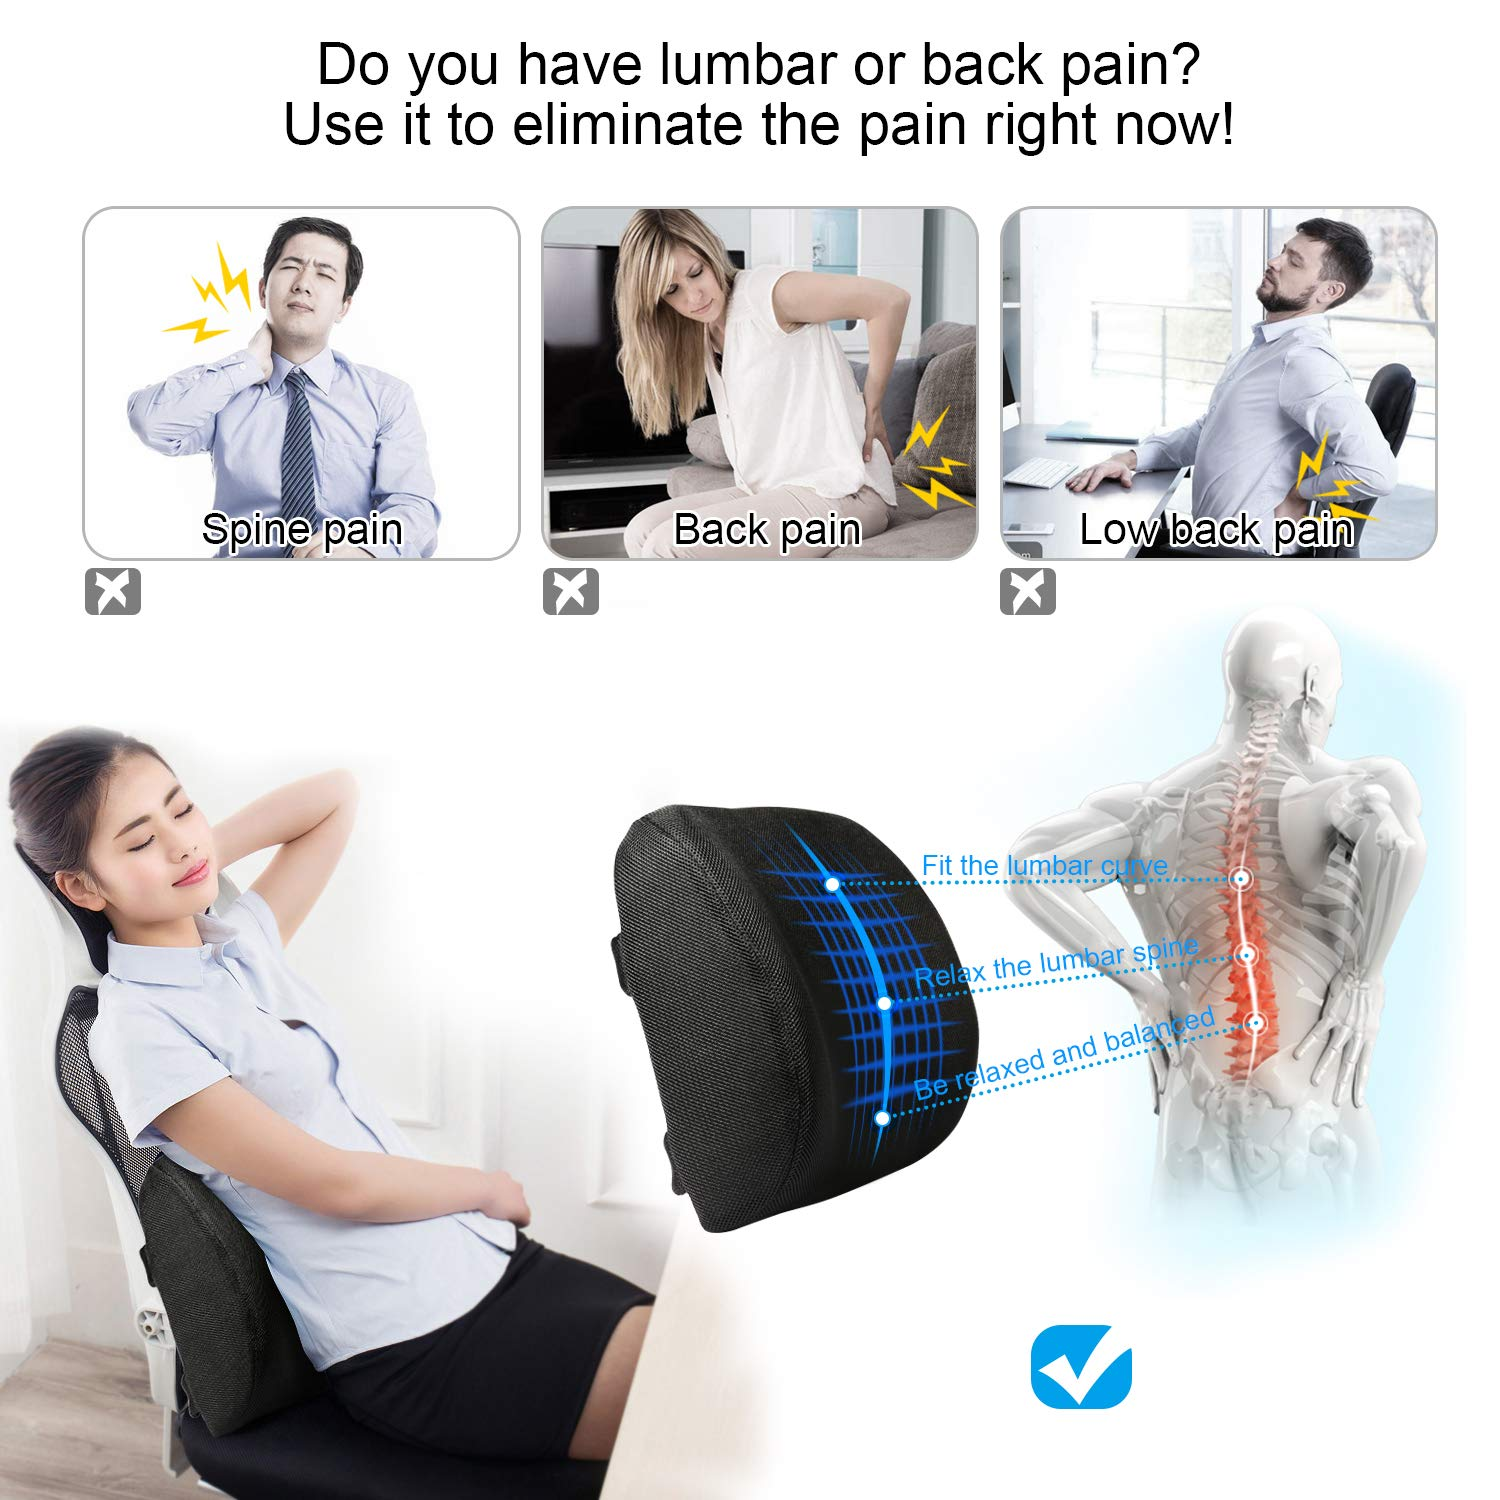 Tdbest Lumbar Support Pillow Premium Cooling Gel and Memory Foam Lumbar Cushion Lower Back Pain Cushion (Black)